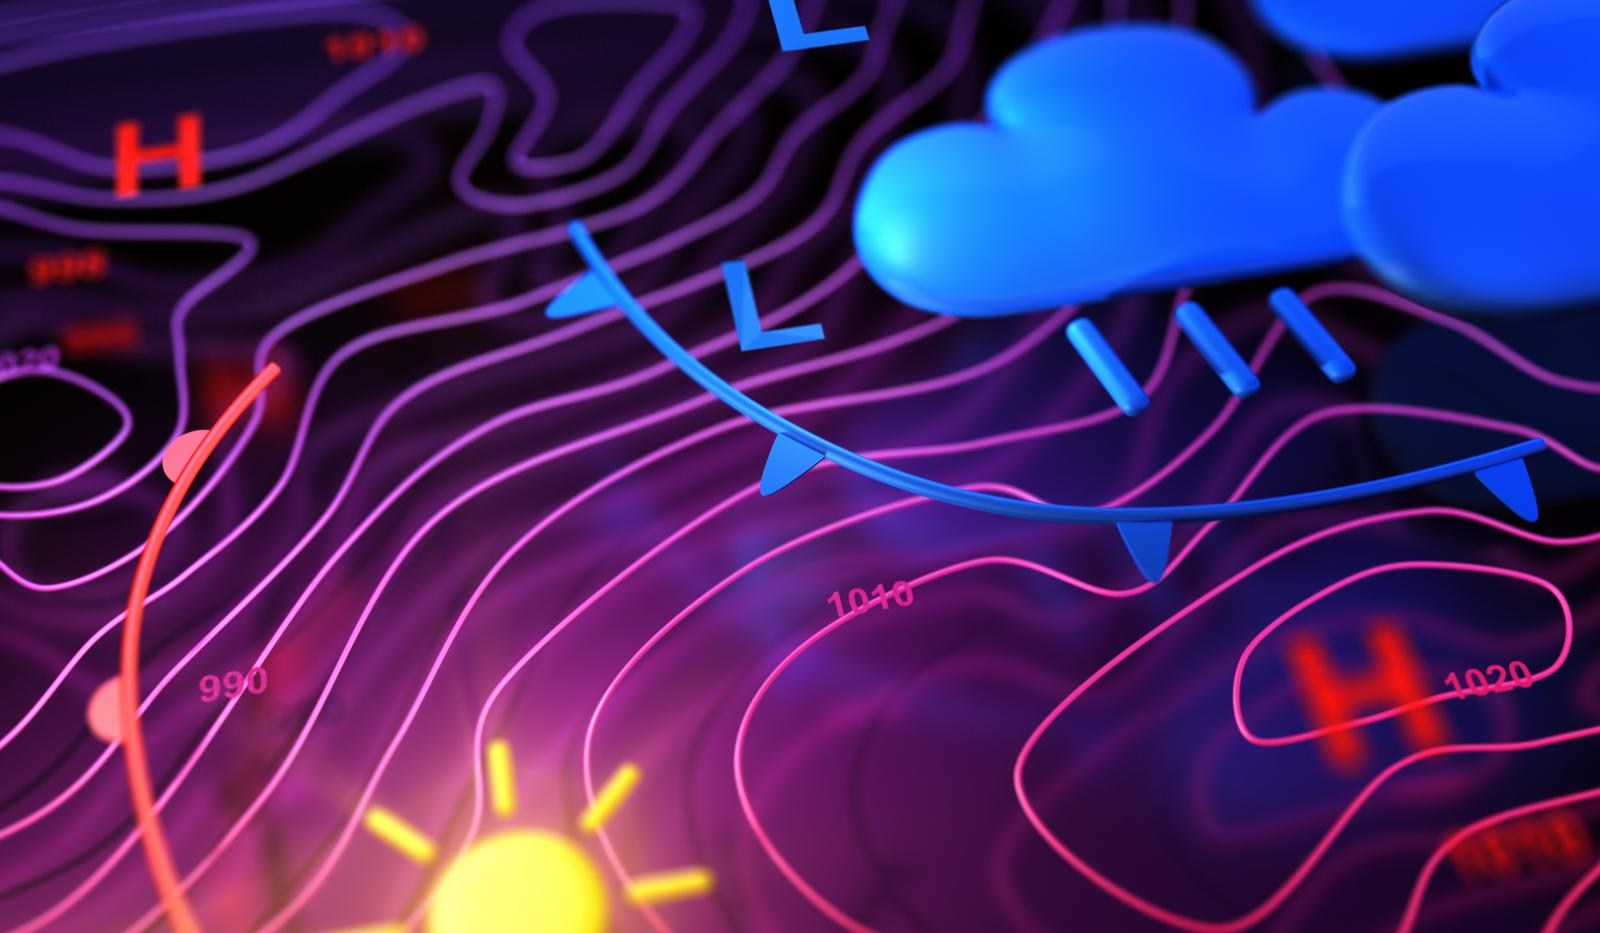 Learn about synoptic weather charts - from Fronts to Isobars